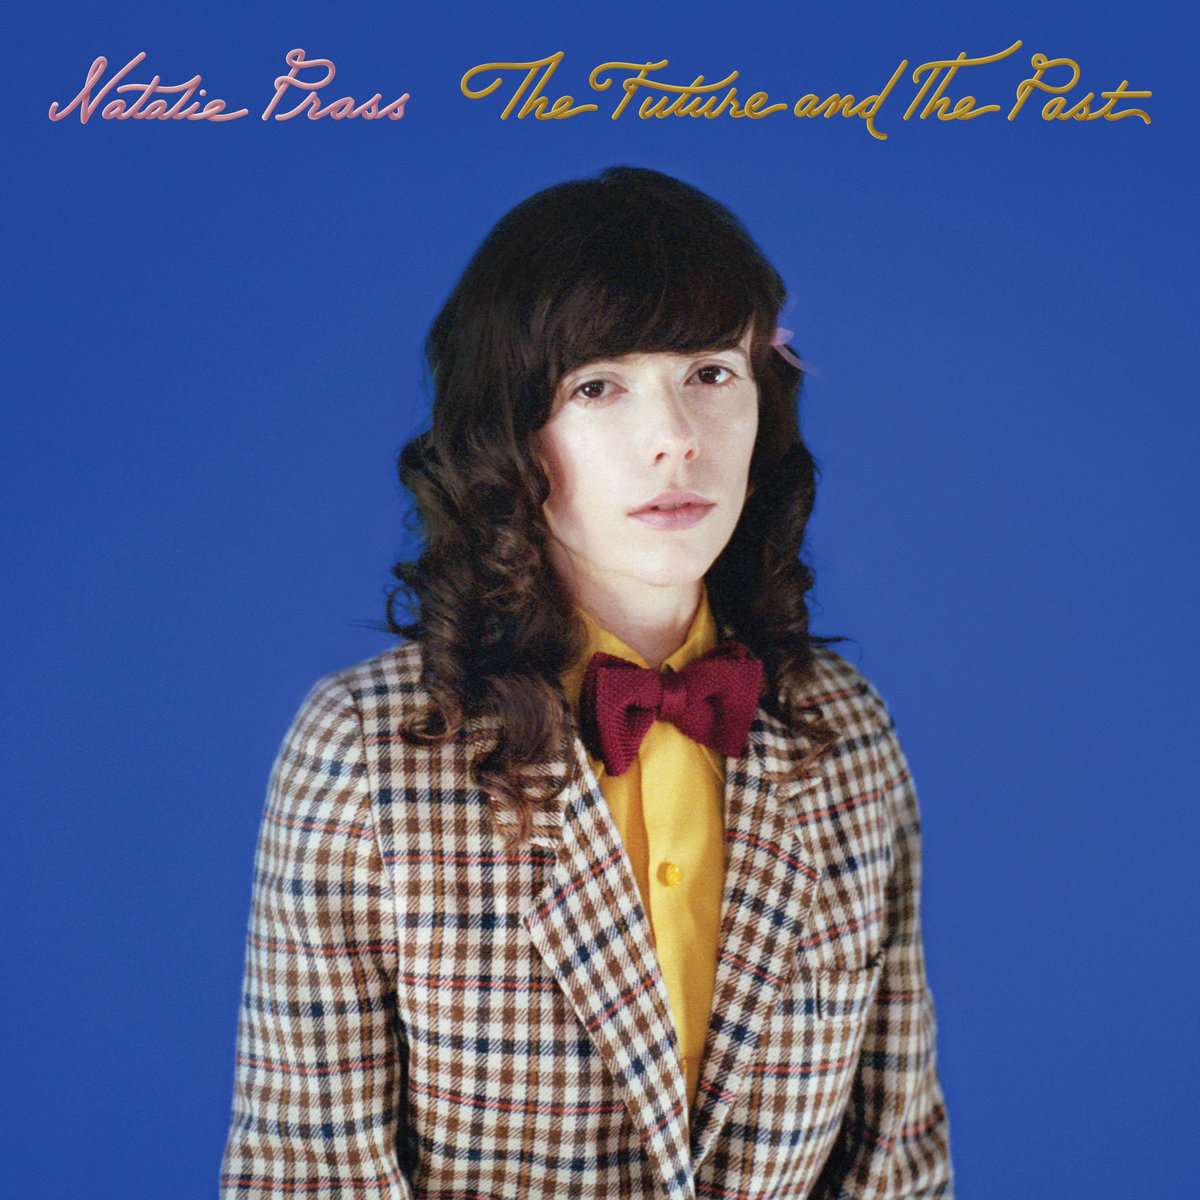 Natalie Prass new album The Future and the Past